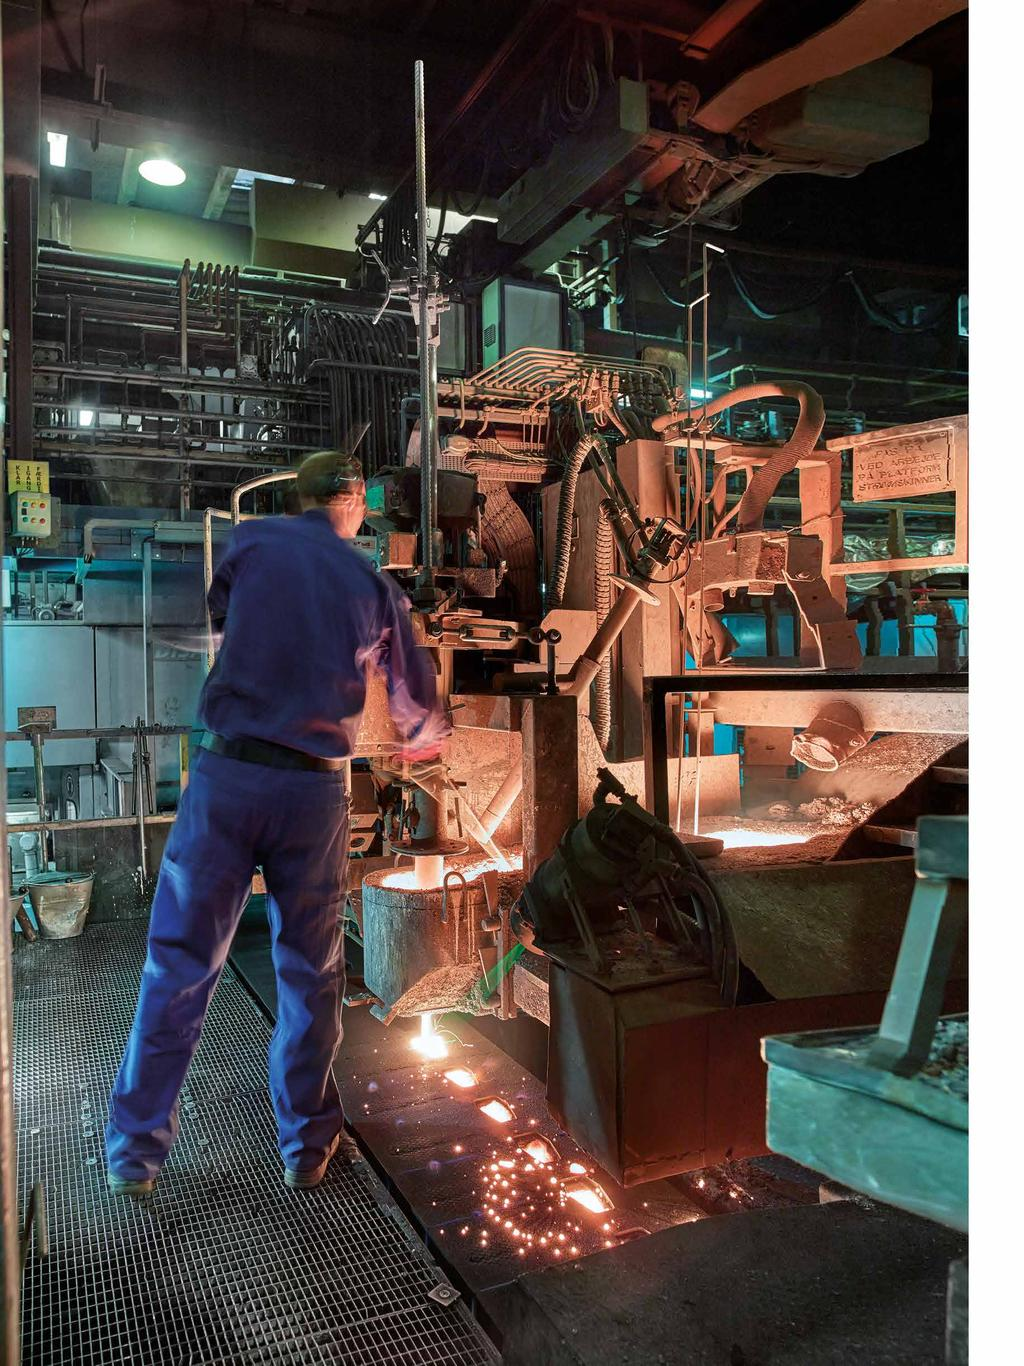 Modern production lines Essentially iron casting has changed little since the invention of iron melting thousands of years ago, but the possibilities today are truly amazing, both in